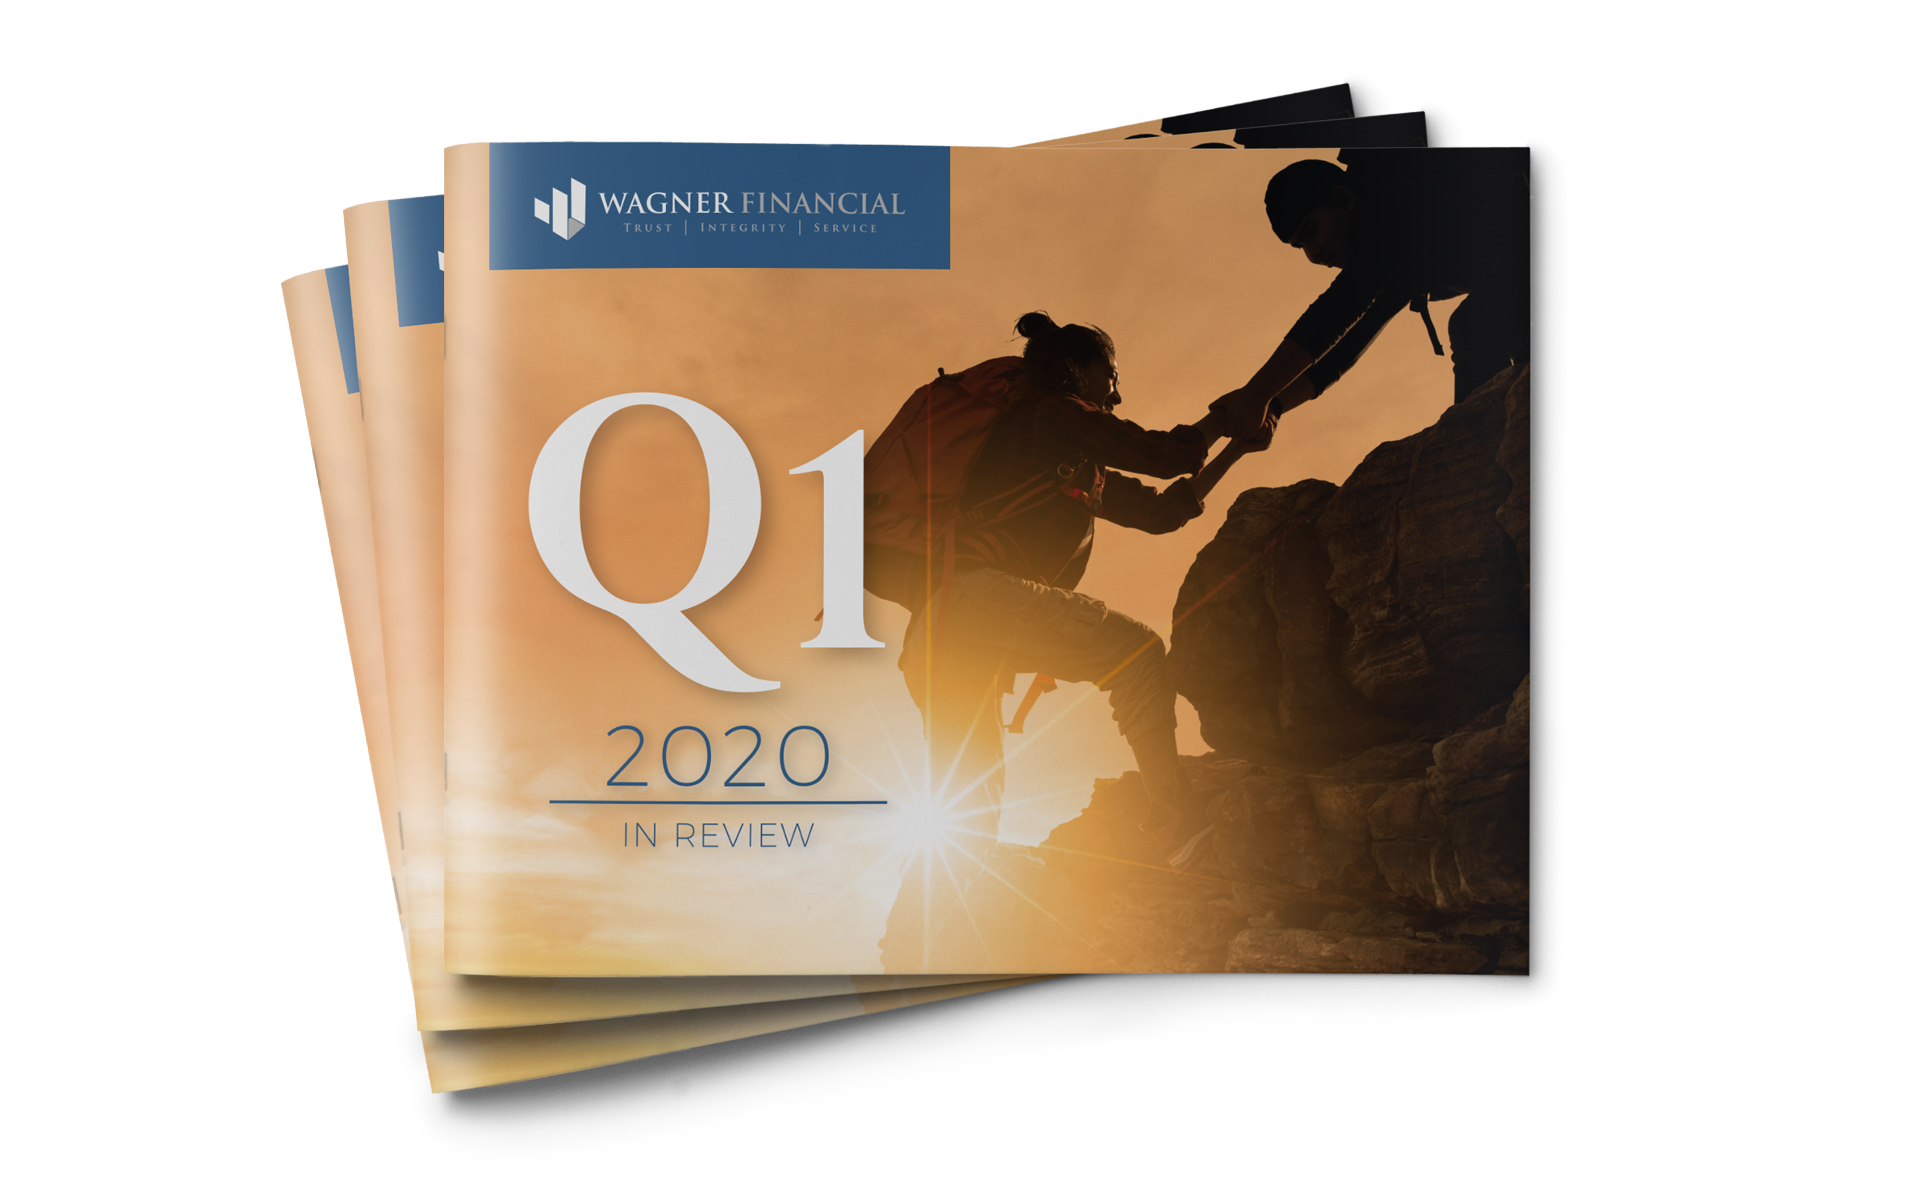 2020 Q1 in Review